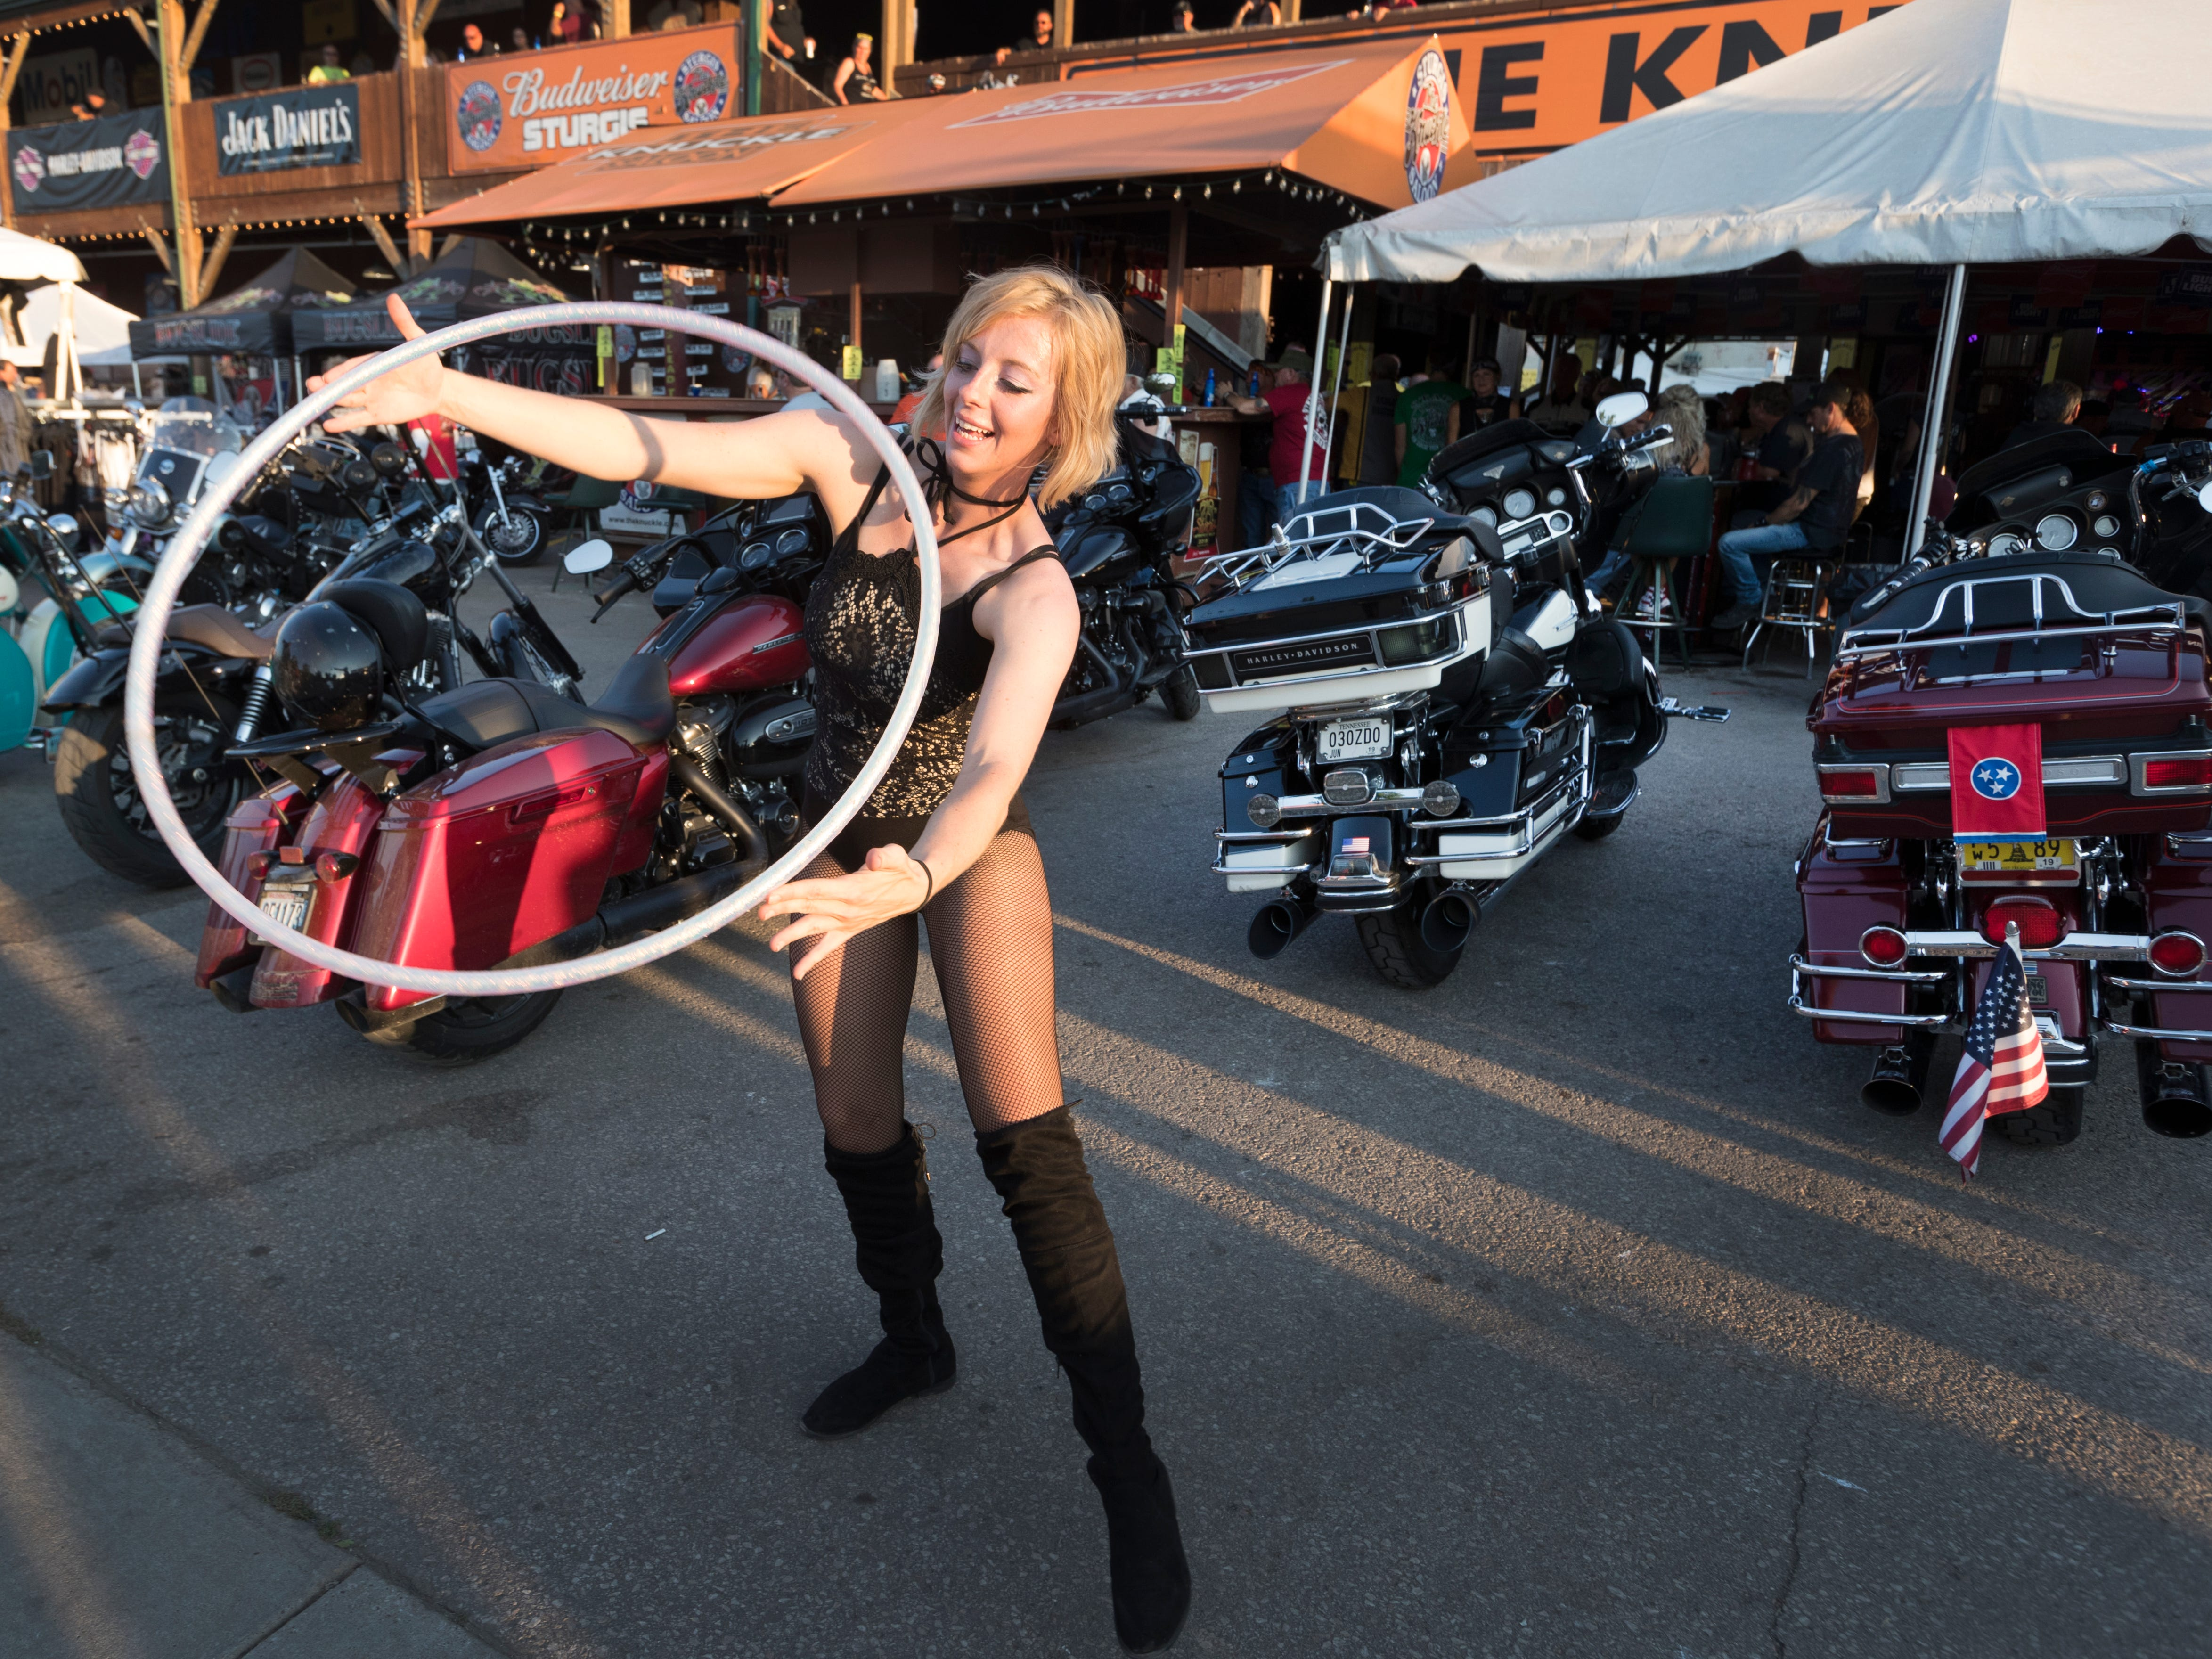 2018: A woman dances with a hoop to entice customers into a bar during the  Sturgis Motorcycle Rally.